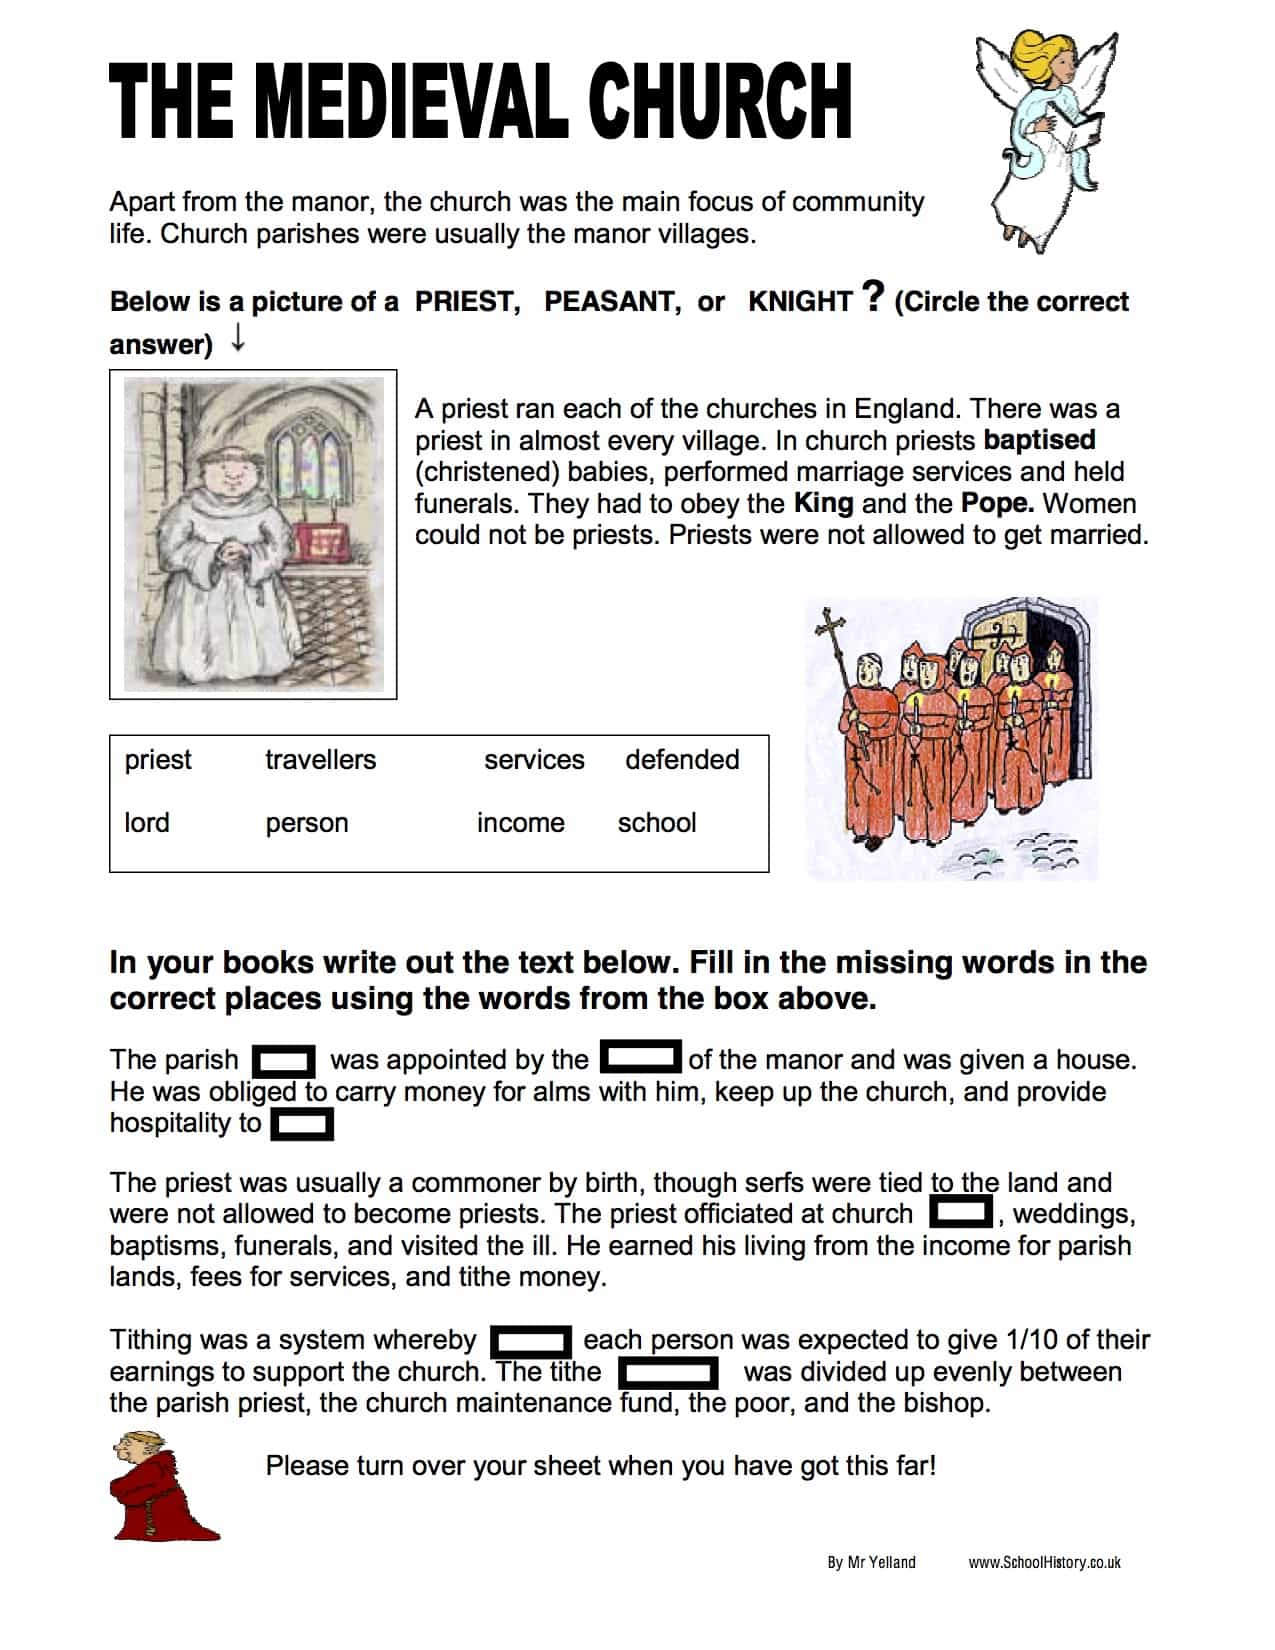 The Medieval Church Summary & Facts (SEN) - Free Worksheet